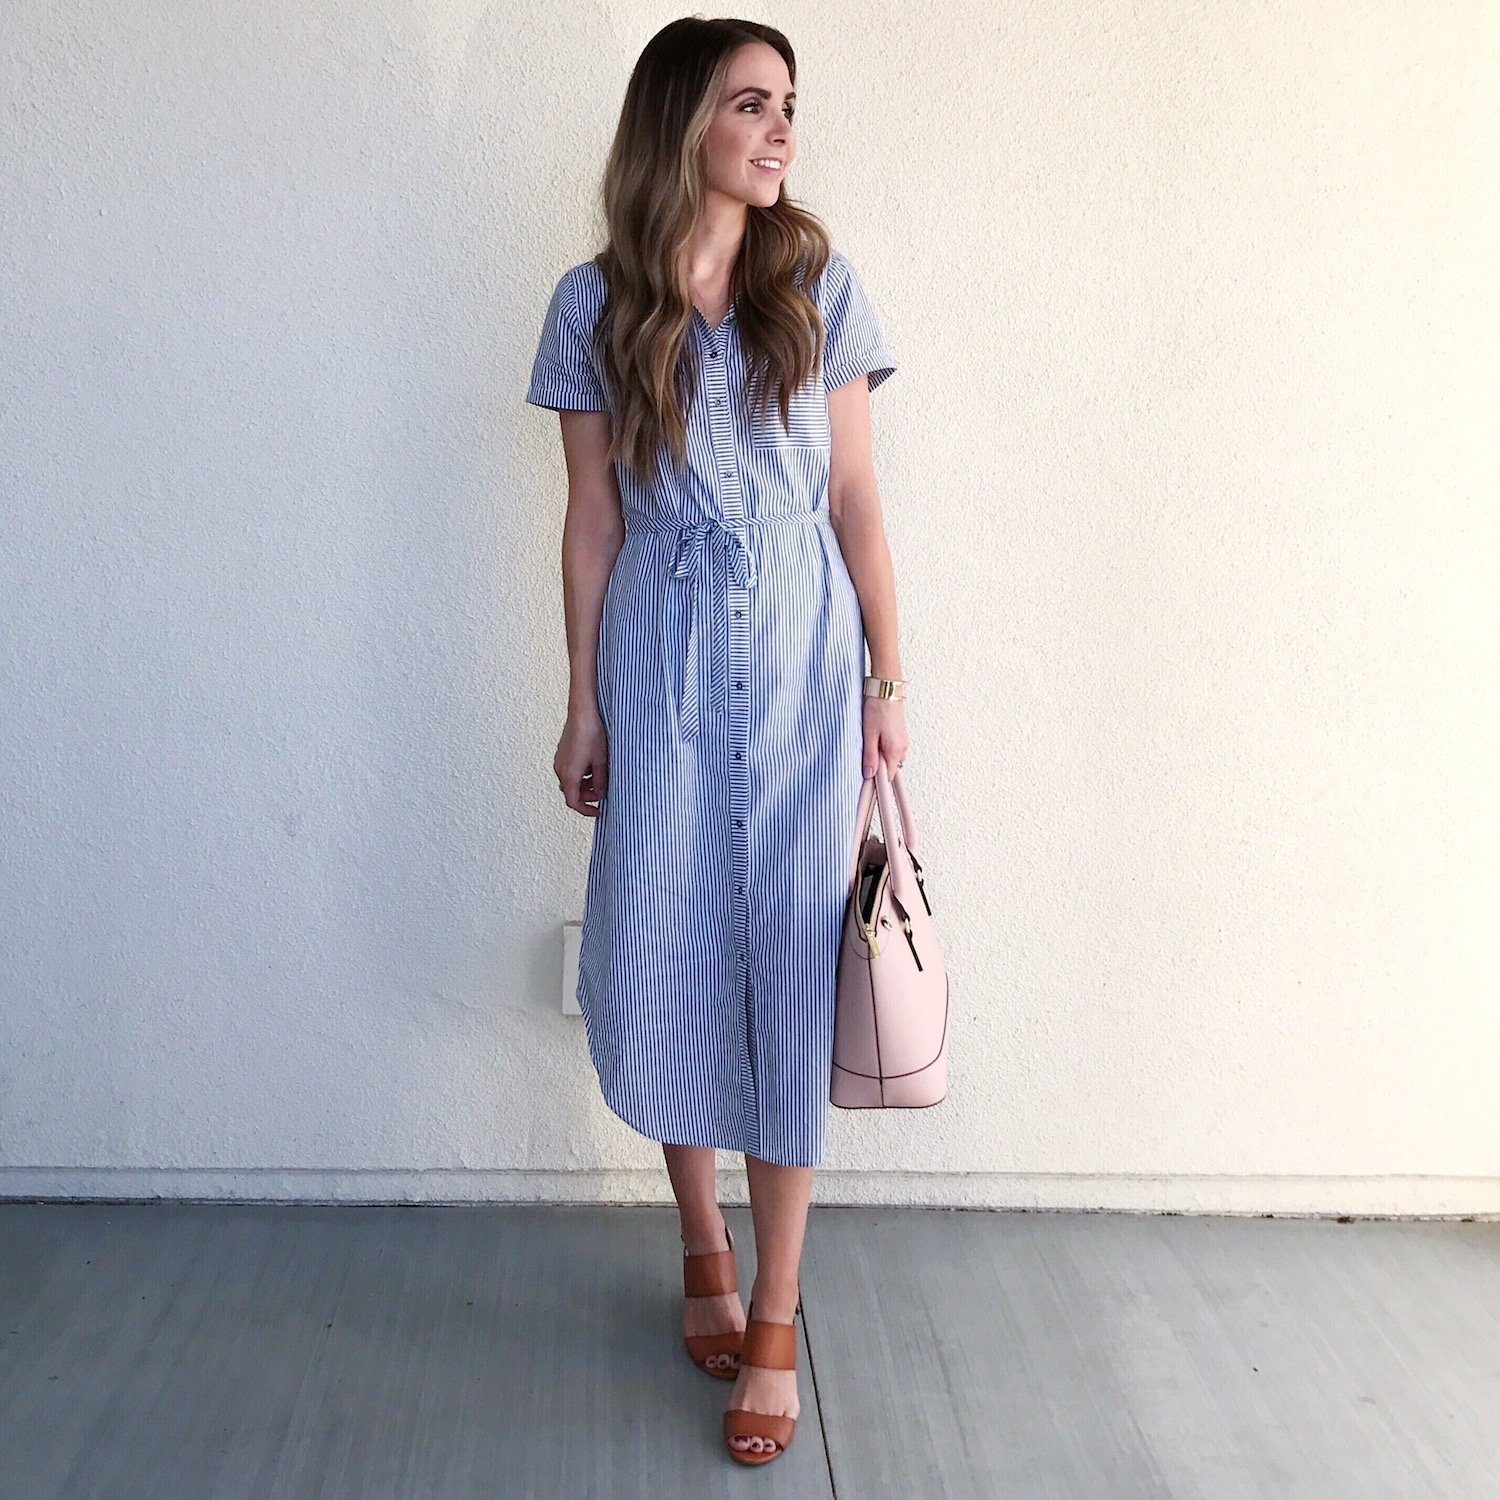 Merrick's Art Abercrombie Shirt Dress